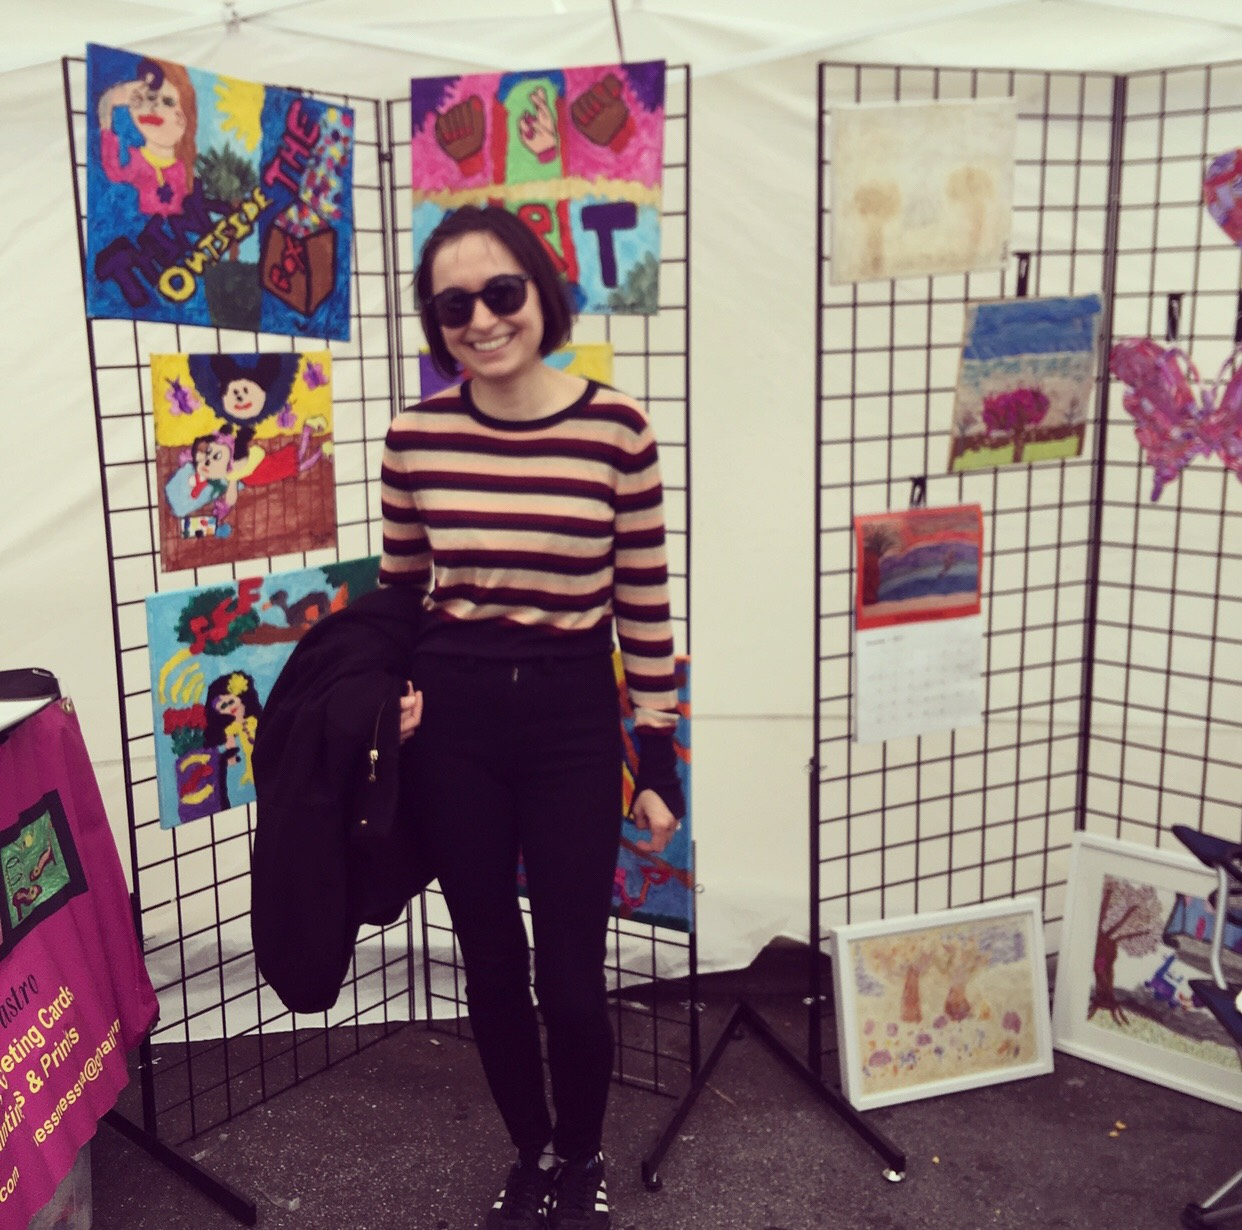 Bay area artist Galine Tumasyan stopped by to check out our booth!